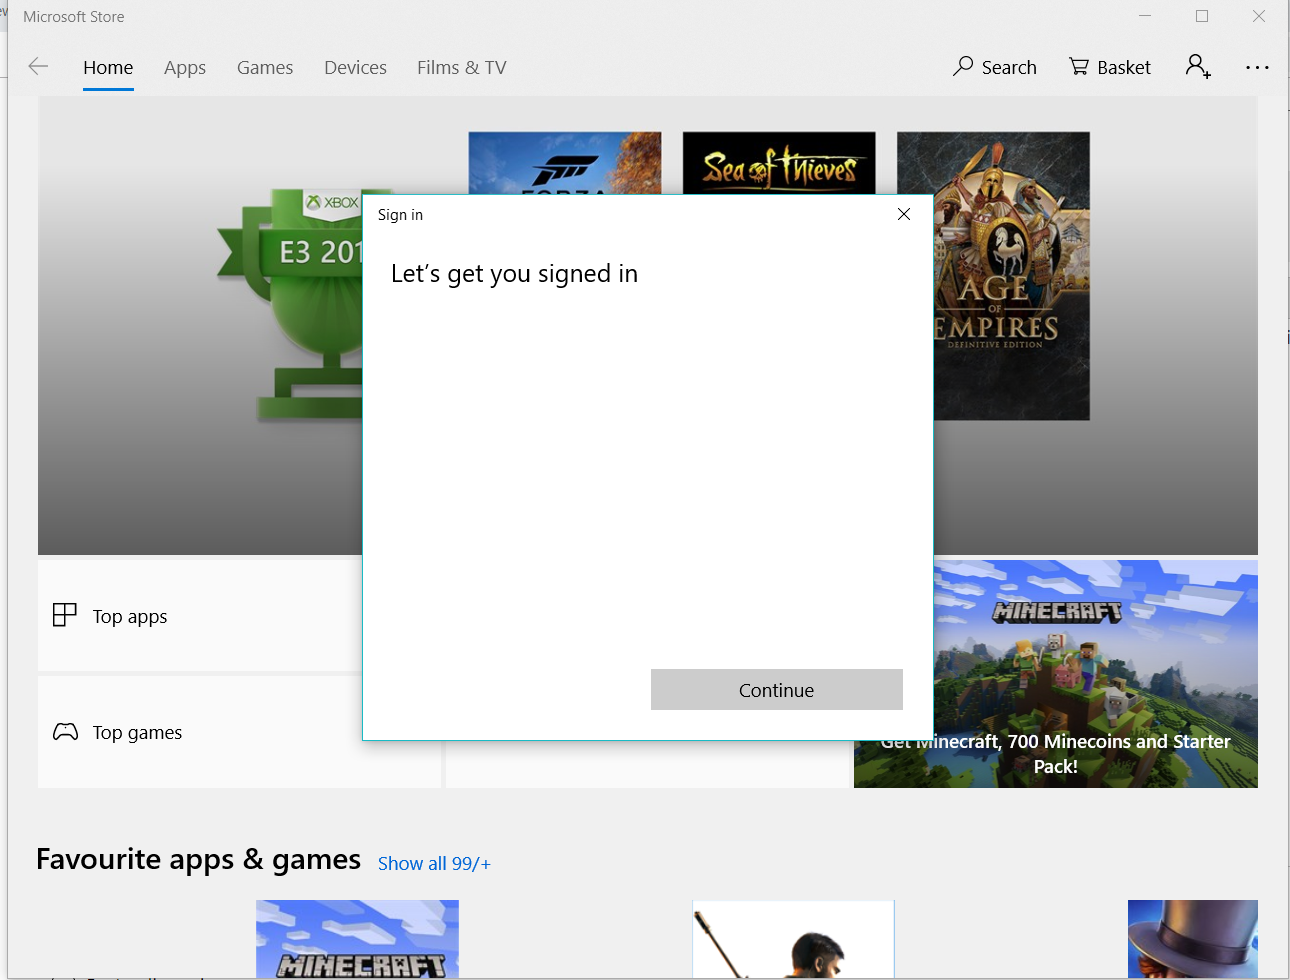 Can't sign into windows store or add fingerprint